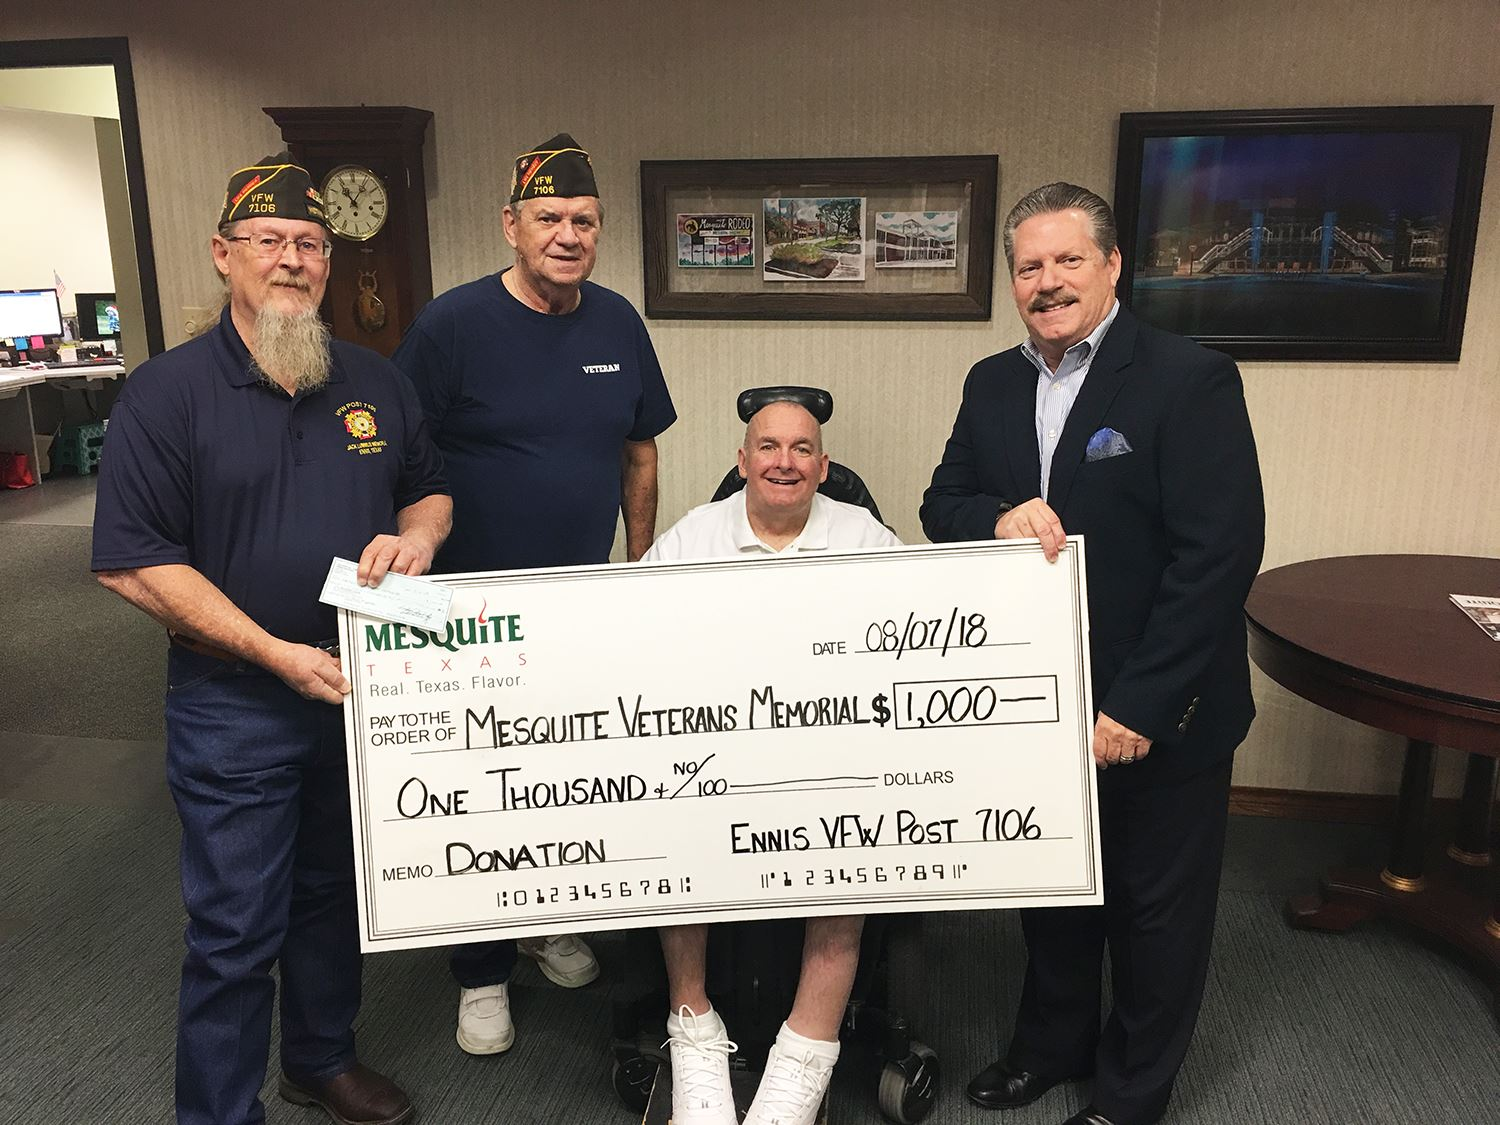 8-7-18 Ennis VFW post donates to veterans memorial